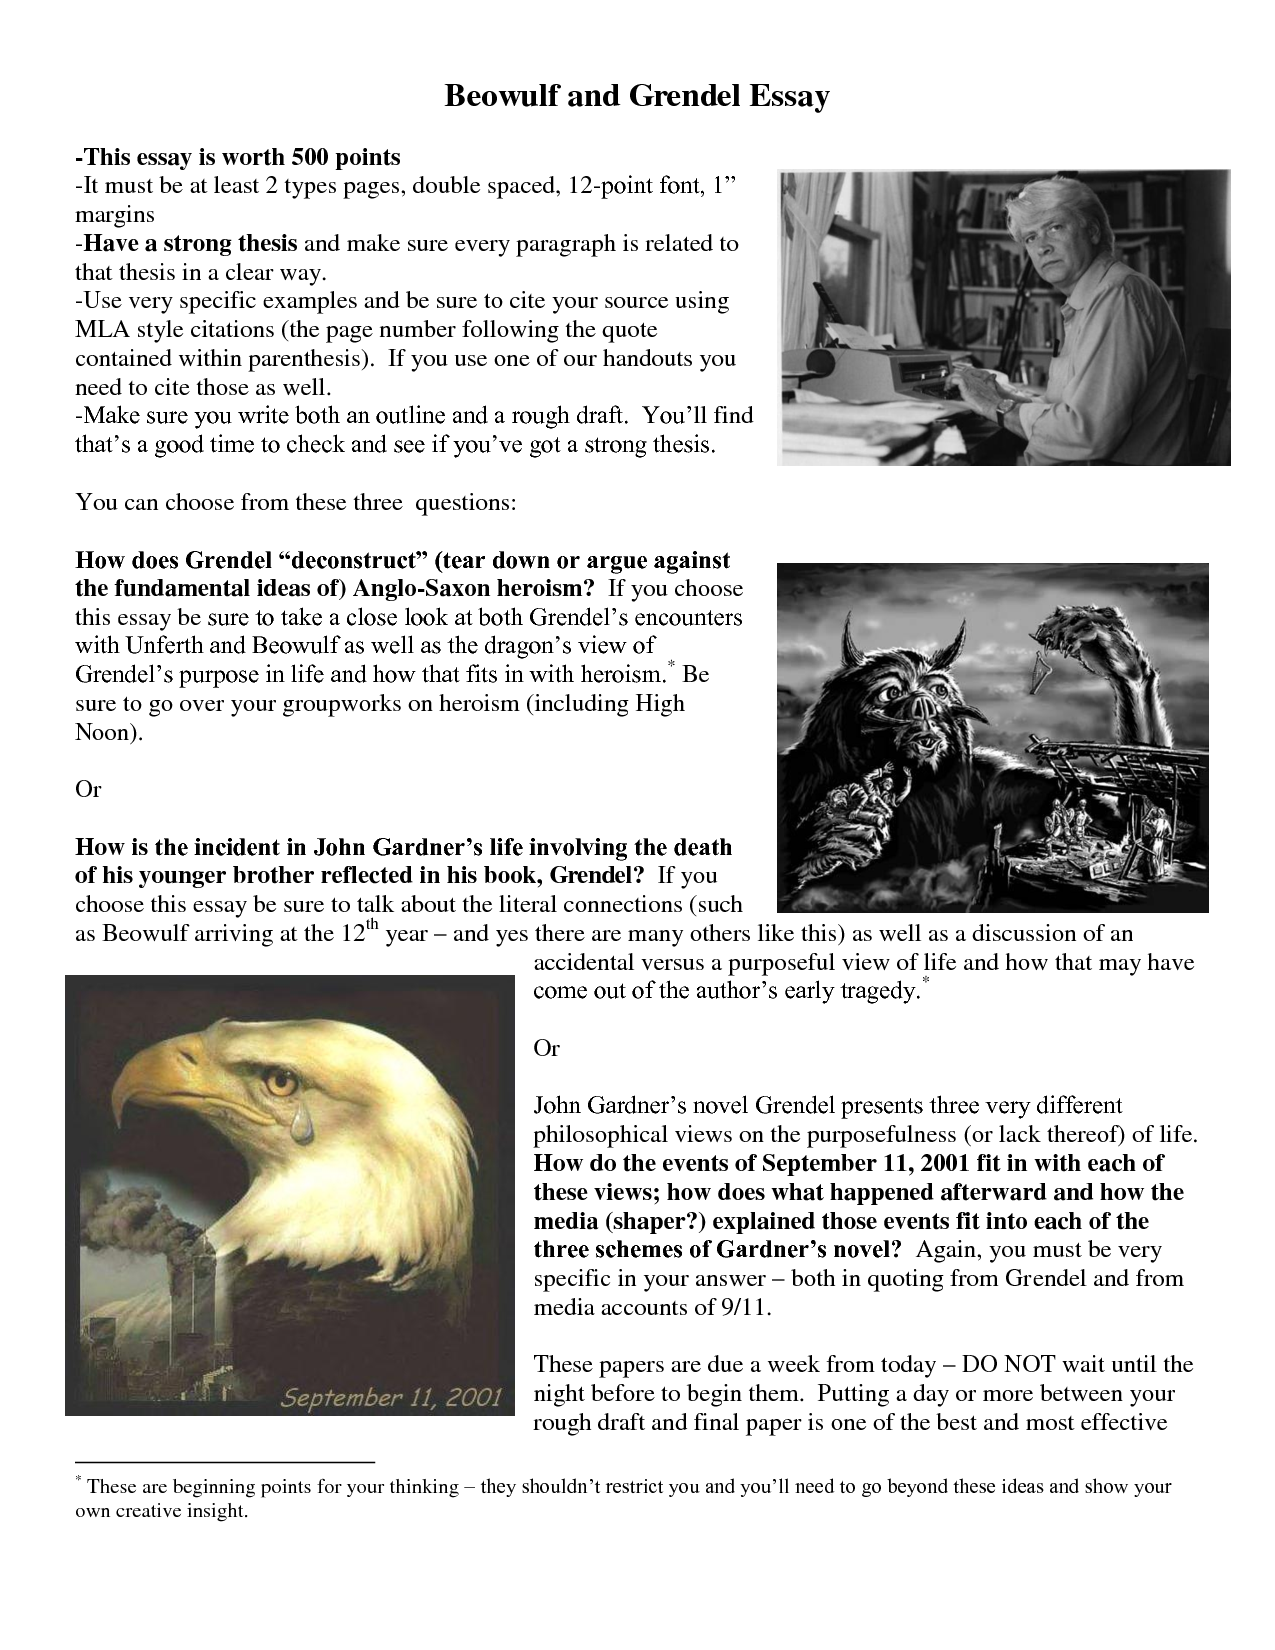 quotes describing grendel in beowulf quotesgram follow us